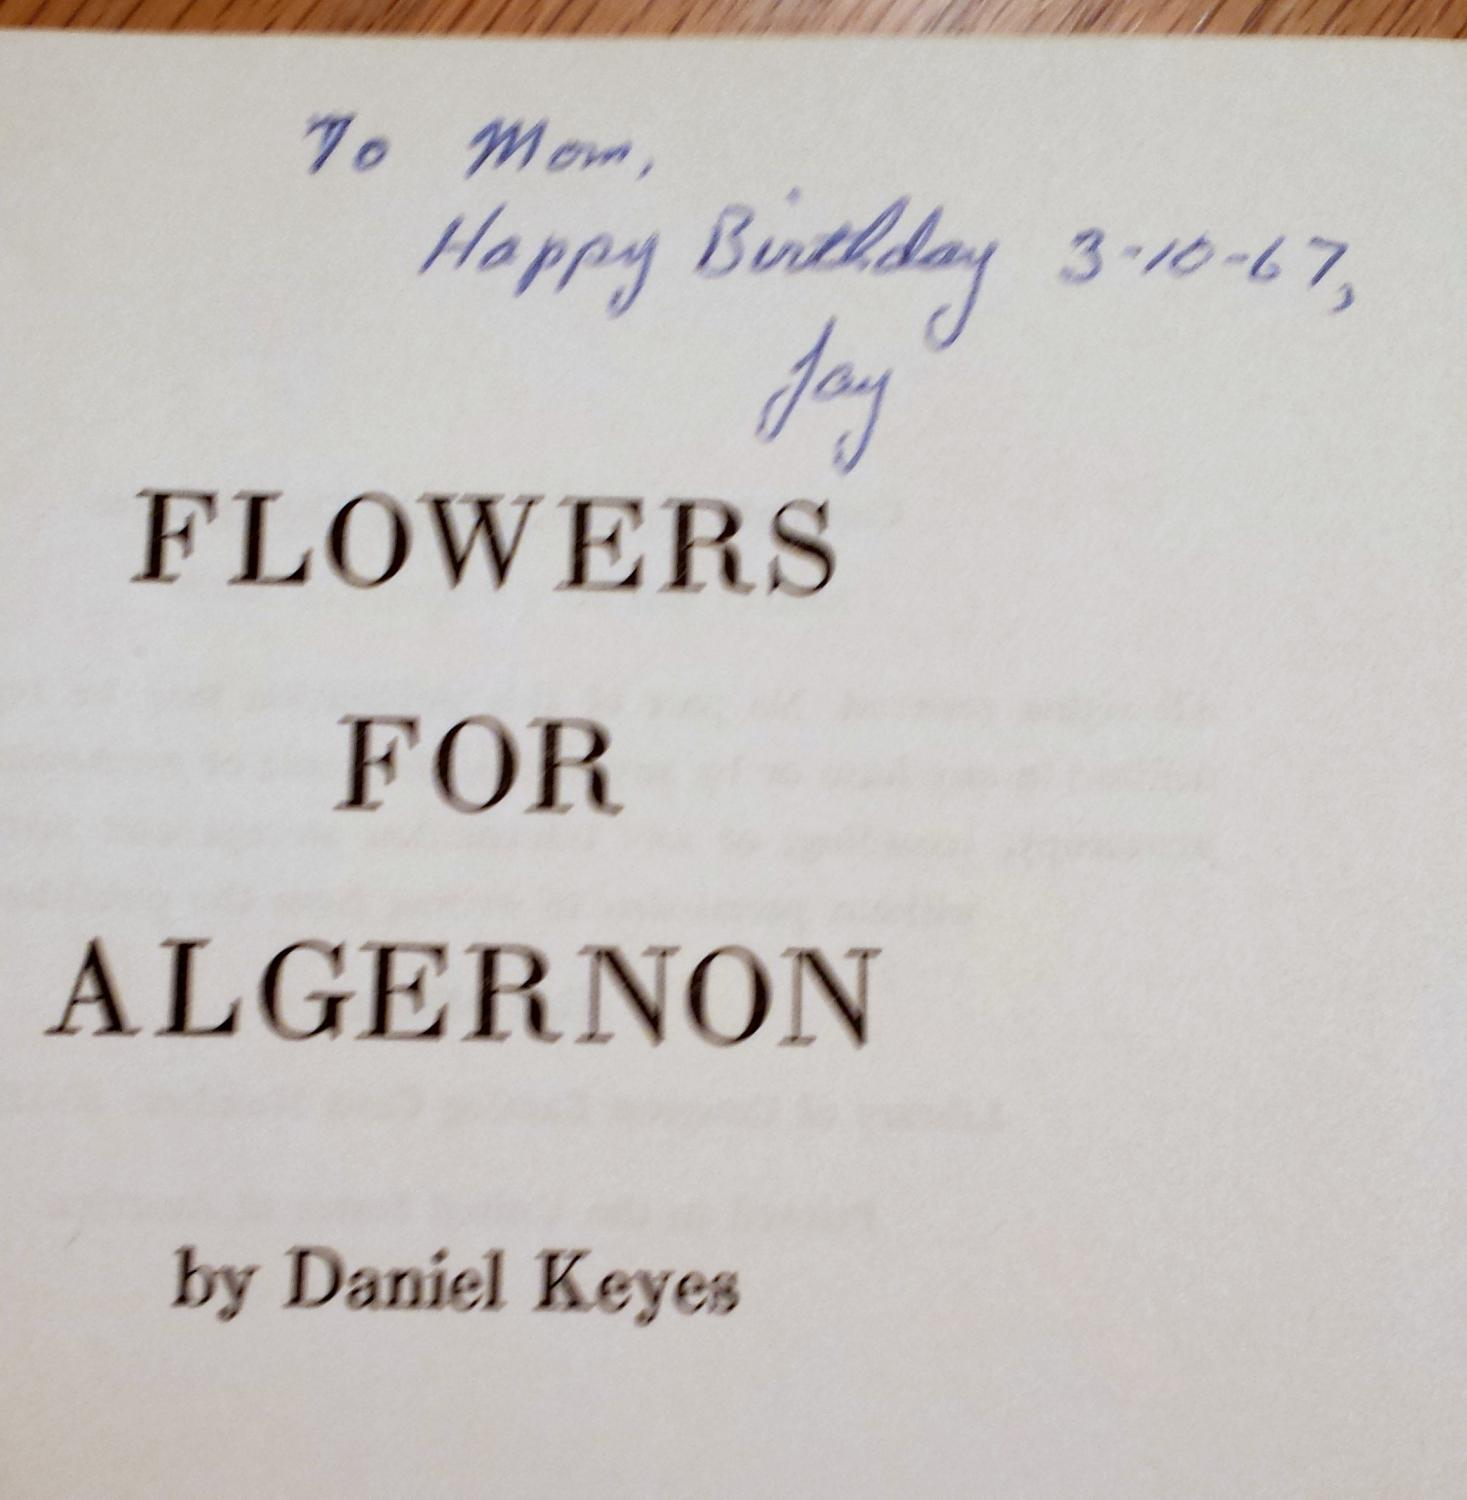 a summary of flowers for algernon a book by daniel keyes Free summary and analysis of the events in daniel keyes's flowers for algernon that won't make you snore we promise.